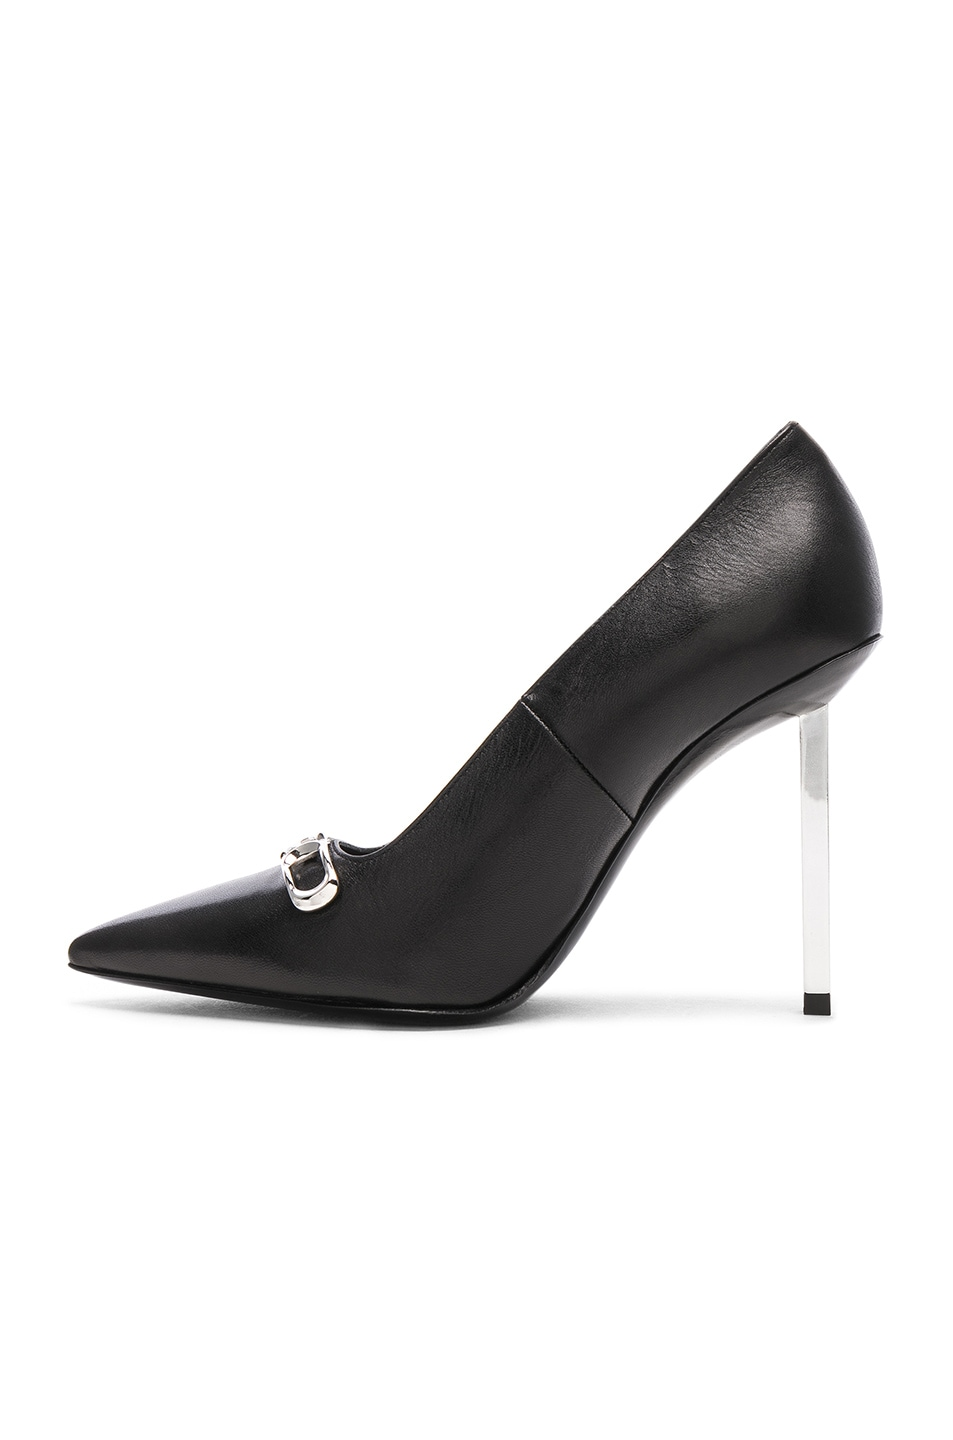 Image 5 of Alexander Wang CEO Pump in Black